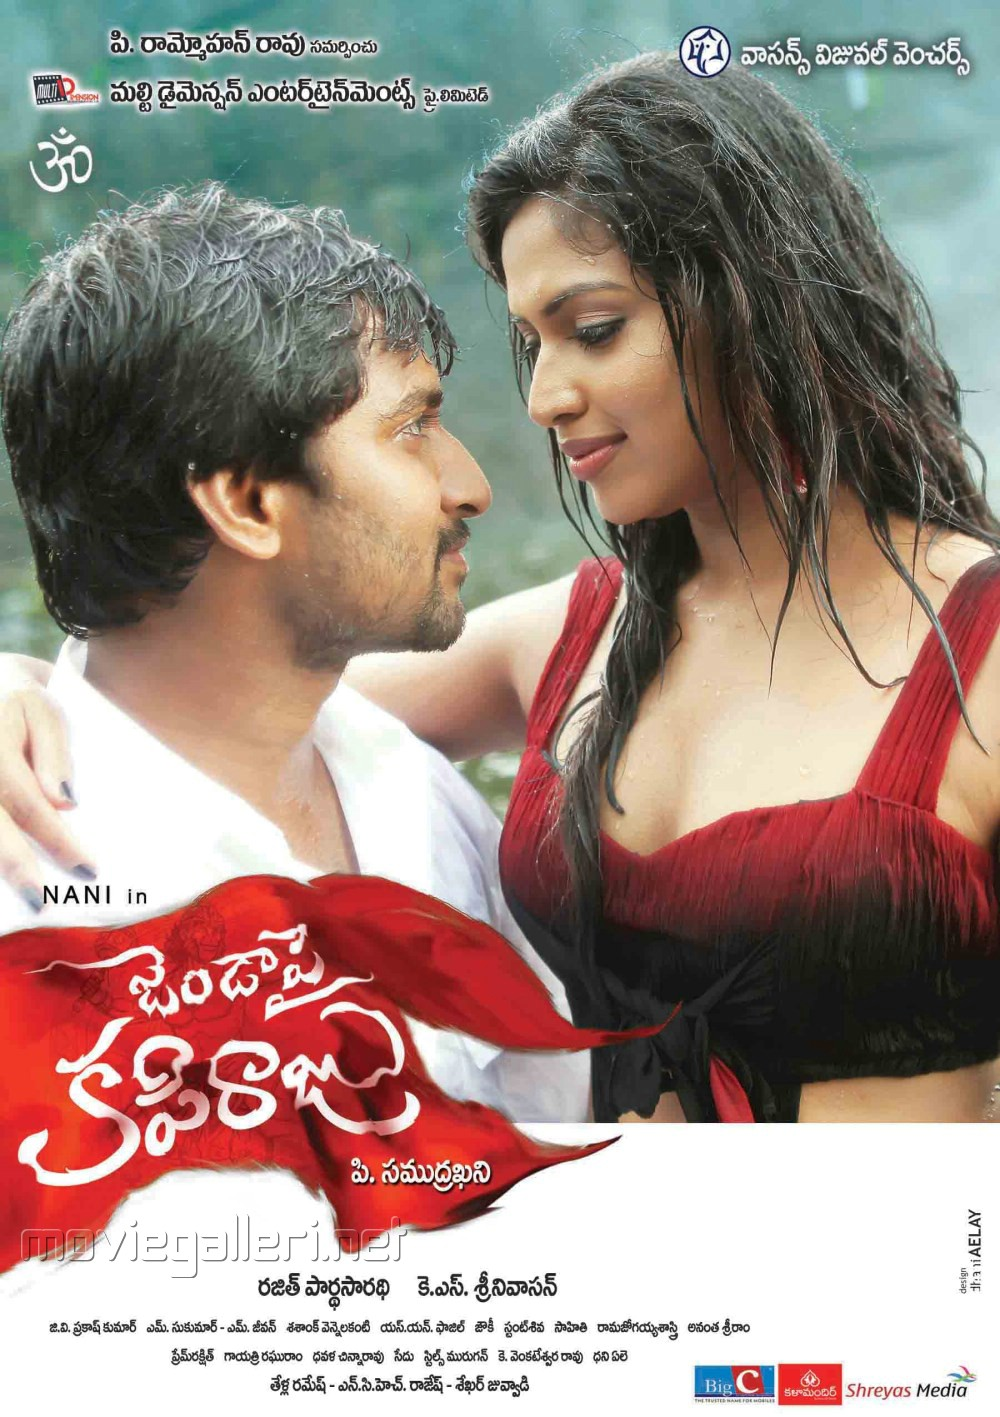 Nani, Amala Paul in Janda Pai Kapiraju Movie Posters